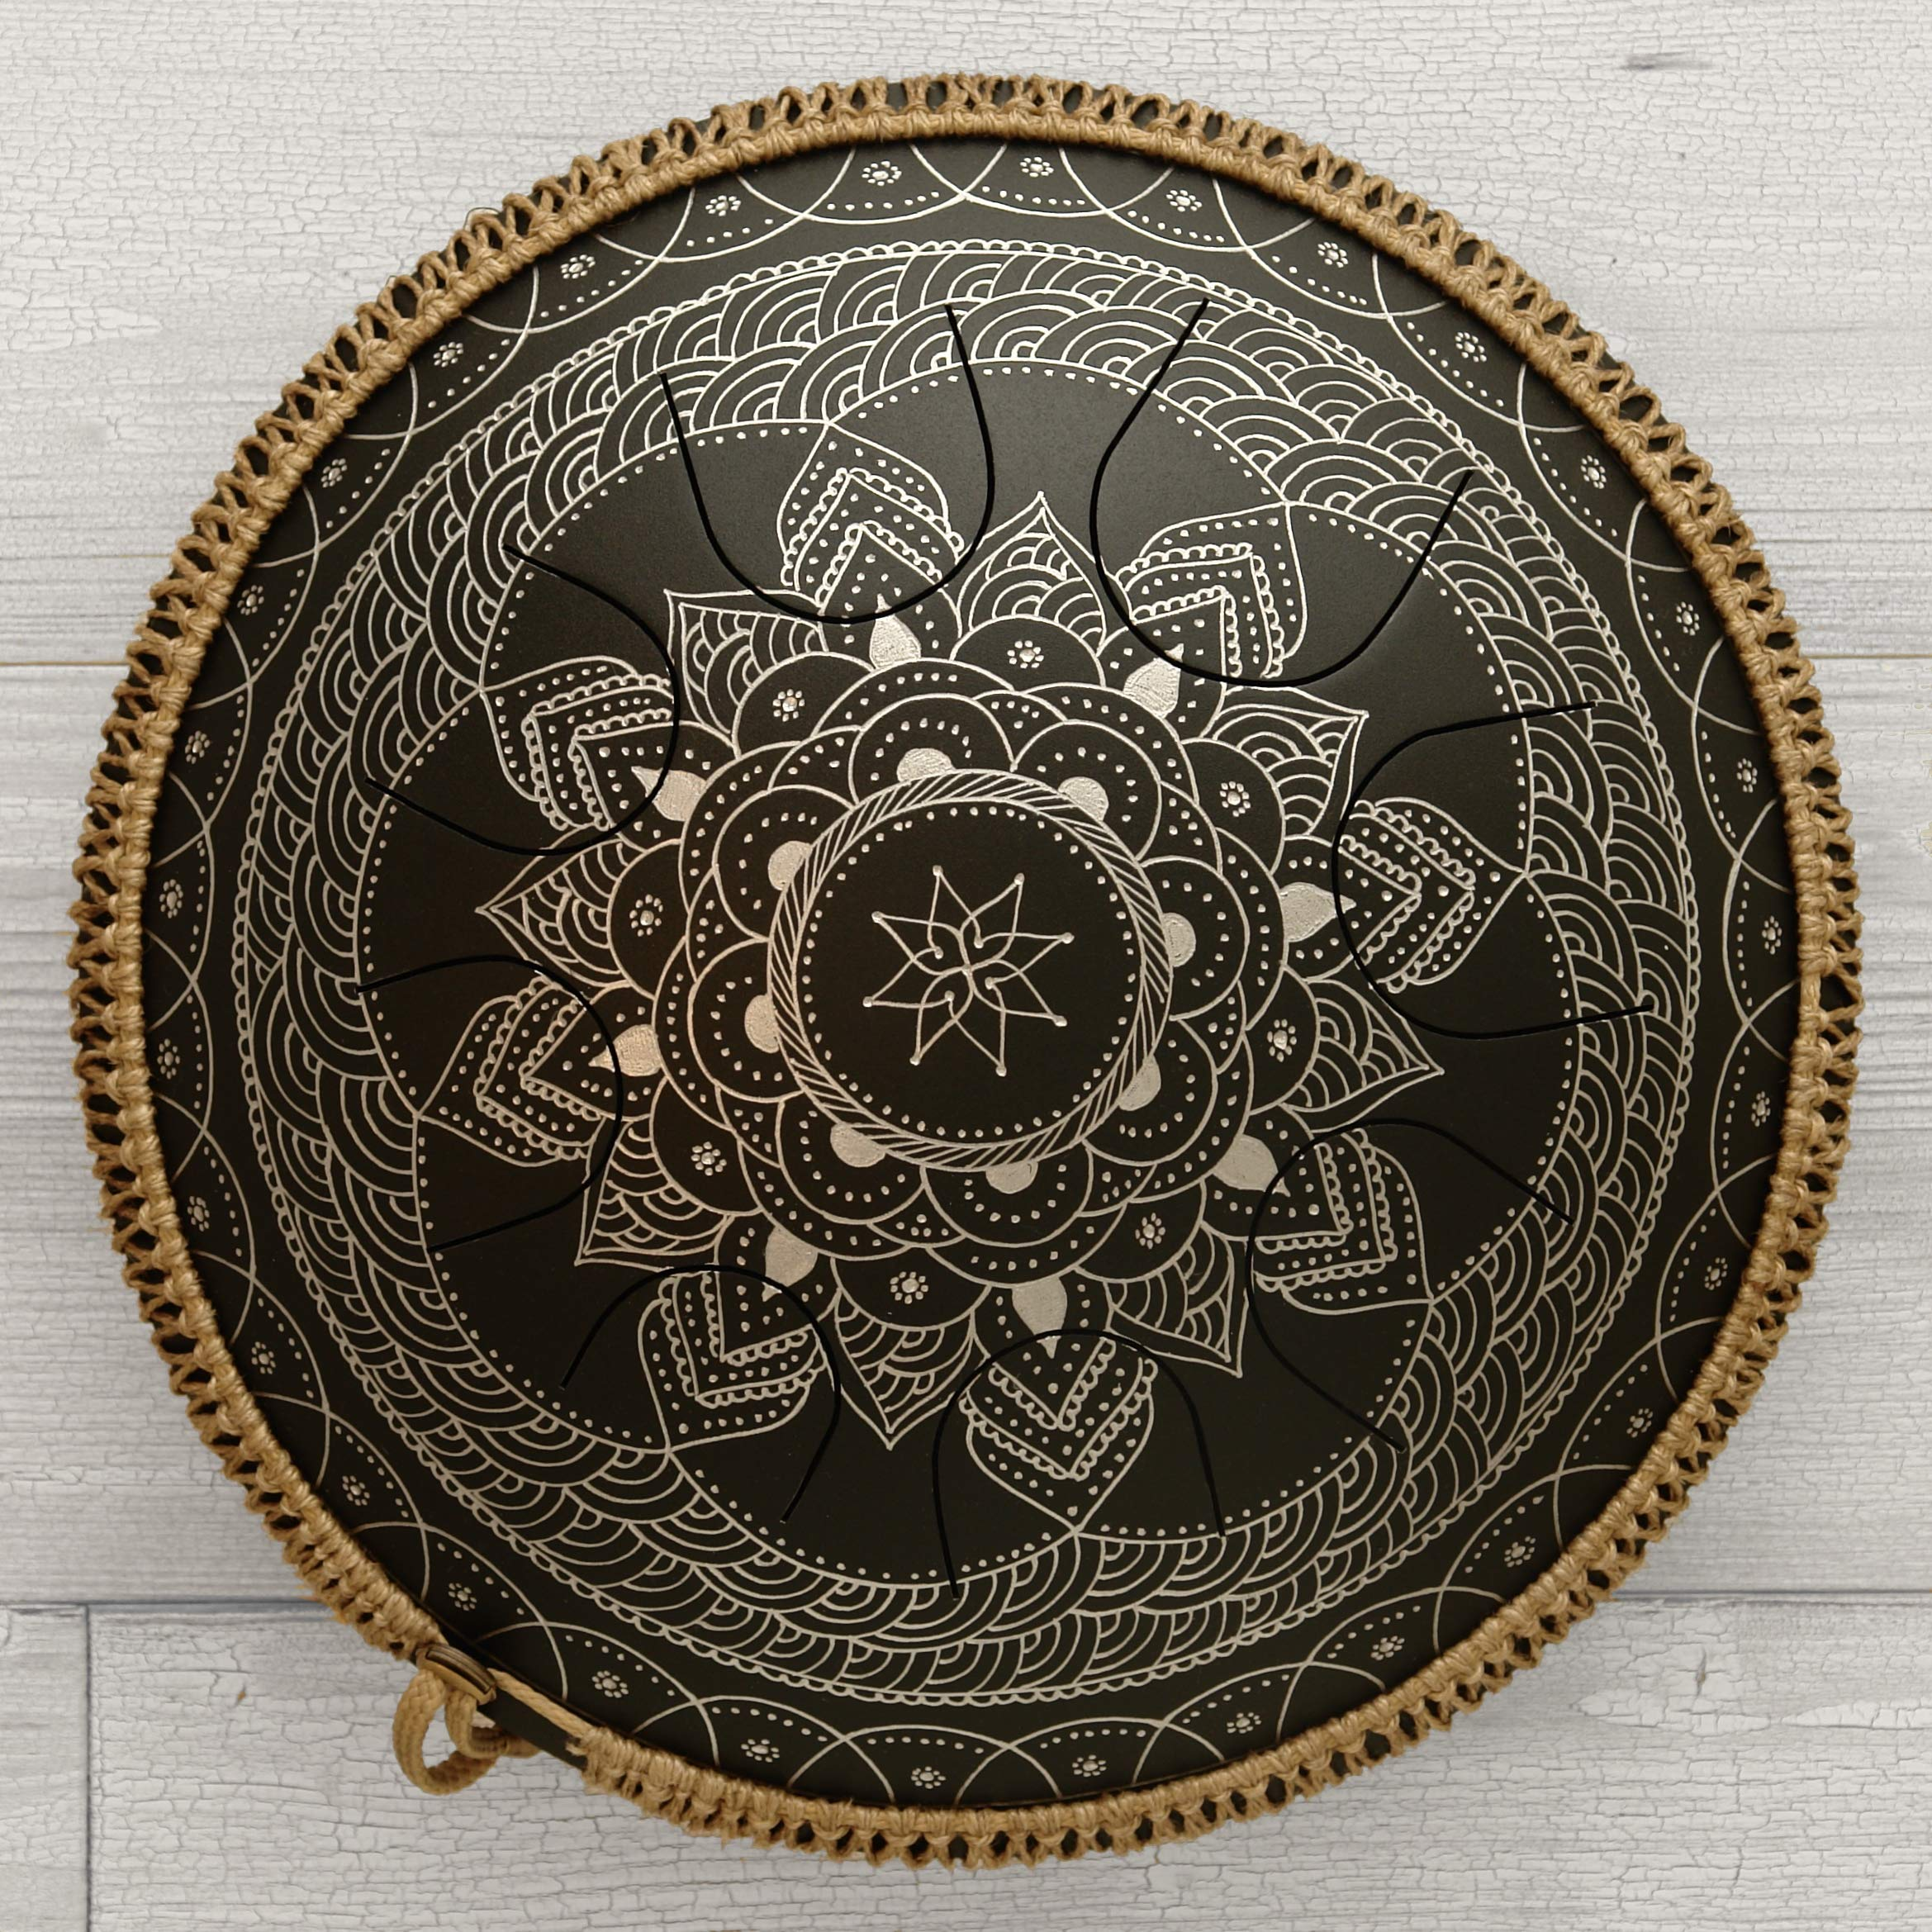 GUDA DRUM Freezbee Black Lotus with Rope Decoration FREE Mallets and Travel Bag. Best Pandrum, Tongue Drum by GUDADRUM